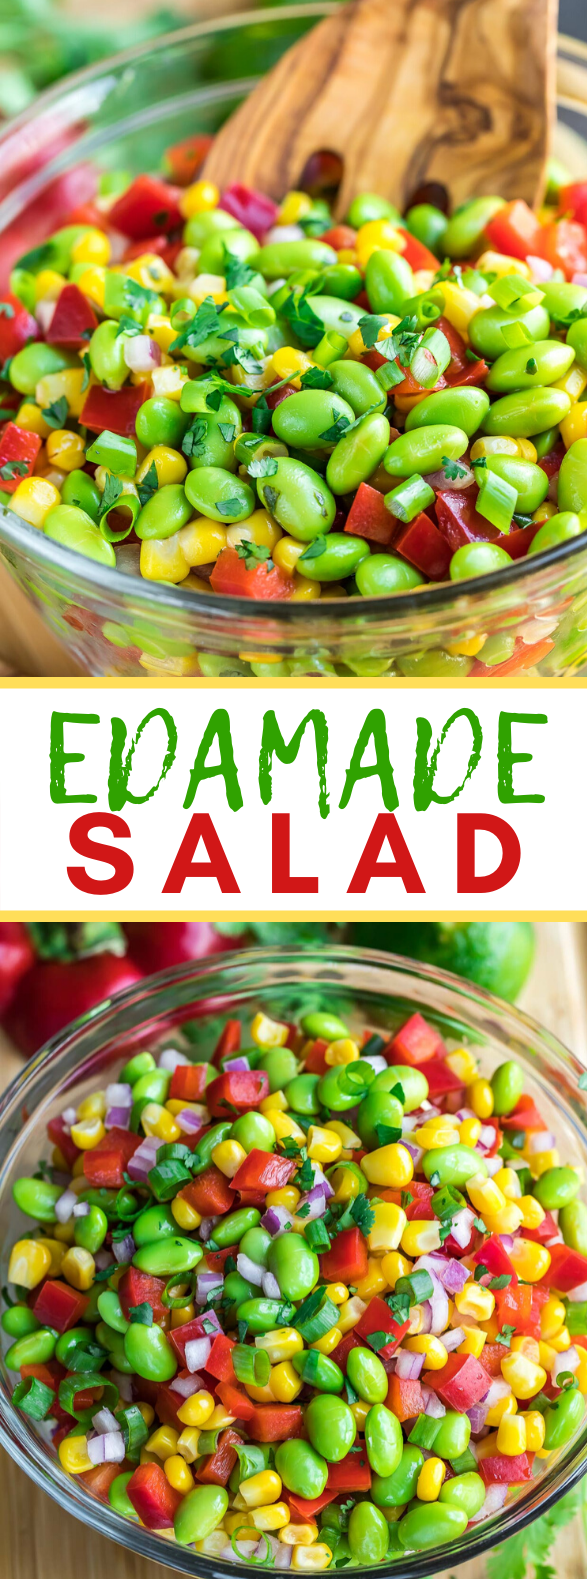 EDAMAME SALAD WITH CILANTRO LIME DRESSING #vegetarian #healthy